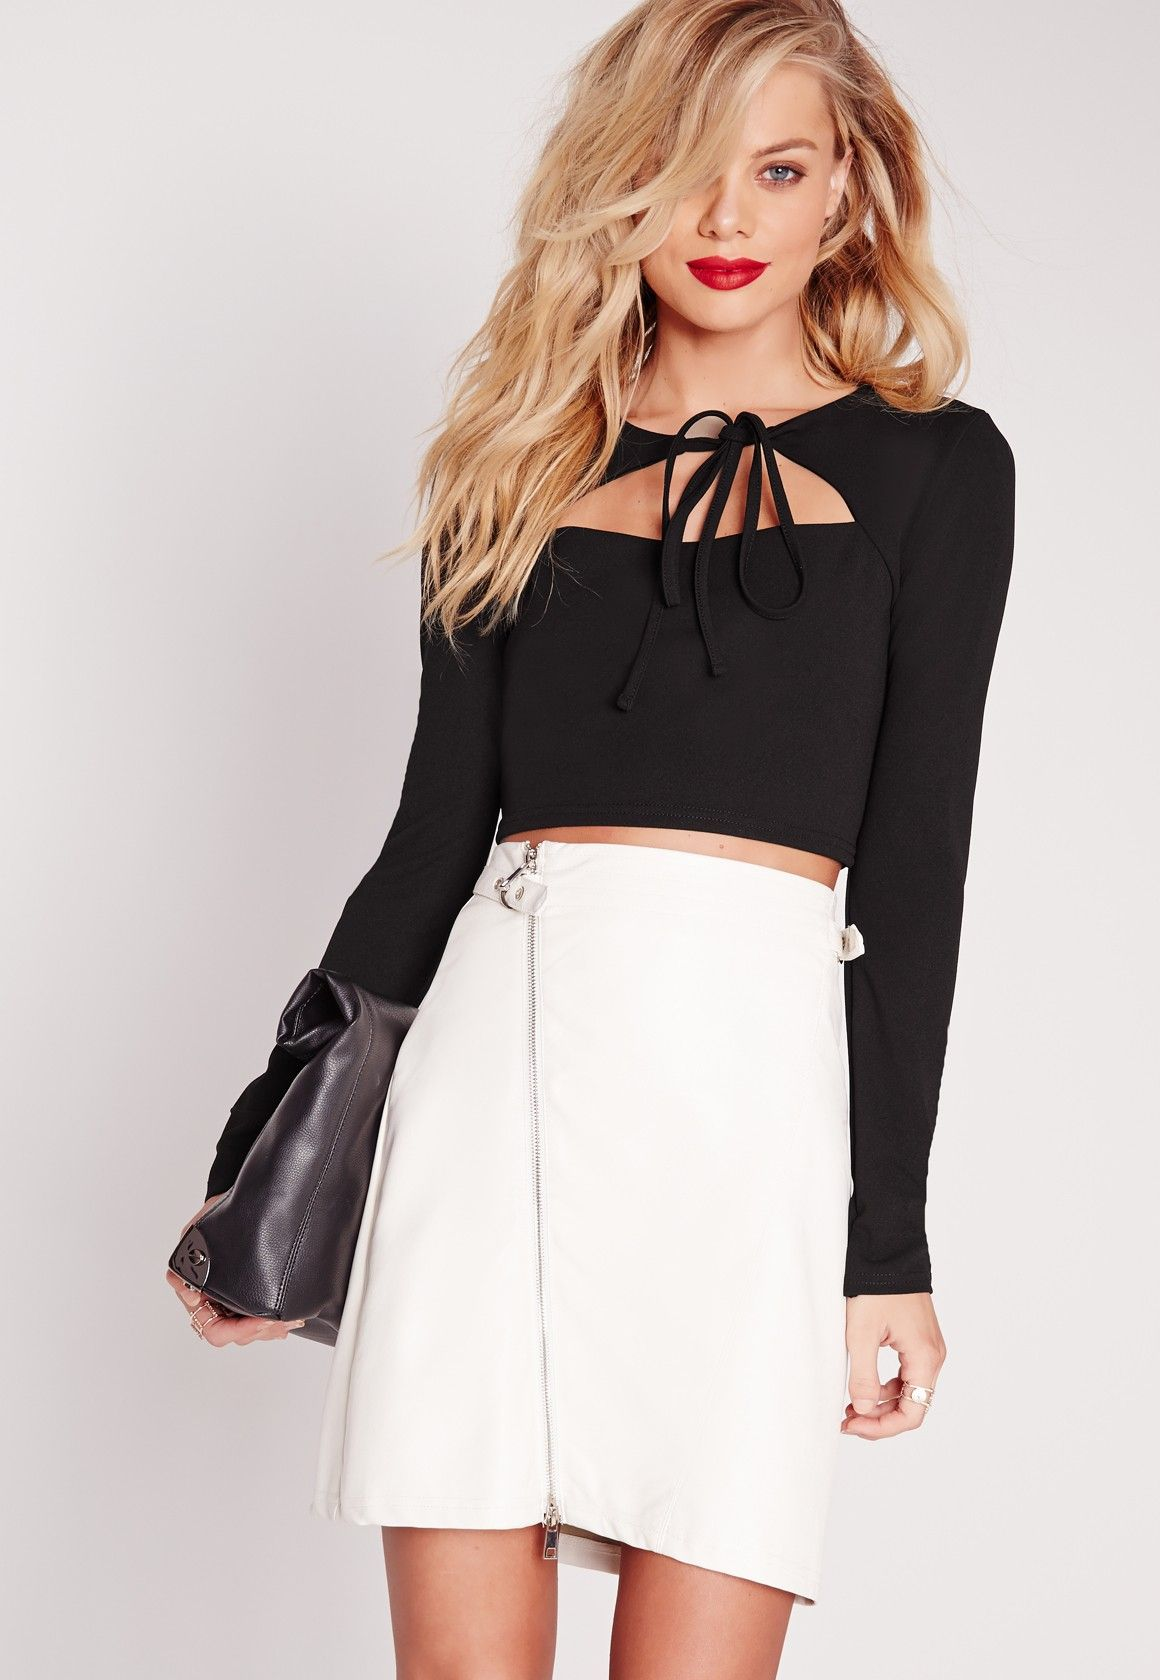 b67a8a598 Misguided Tie Front Cut Out Crop Top Black   glam chic   Fashion ...